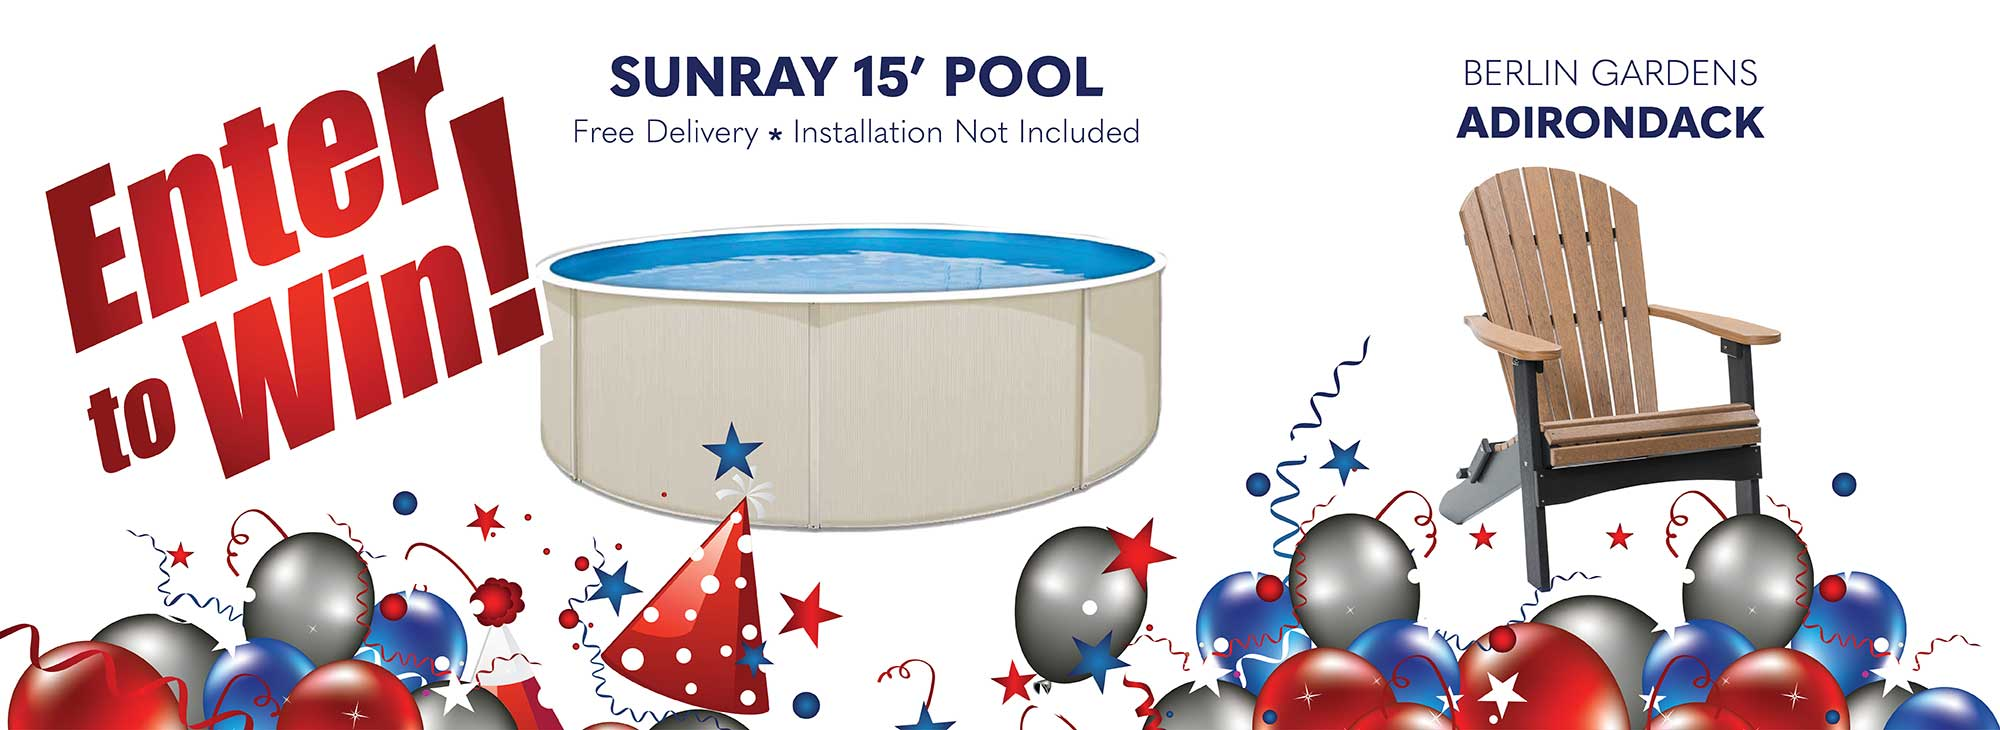 Enter to win a Sunray 15' Above Ground Pool OR a Berlin Garden's Adirondack